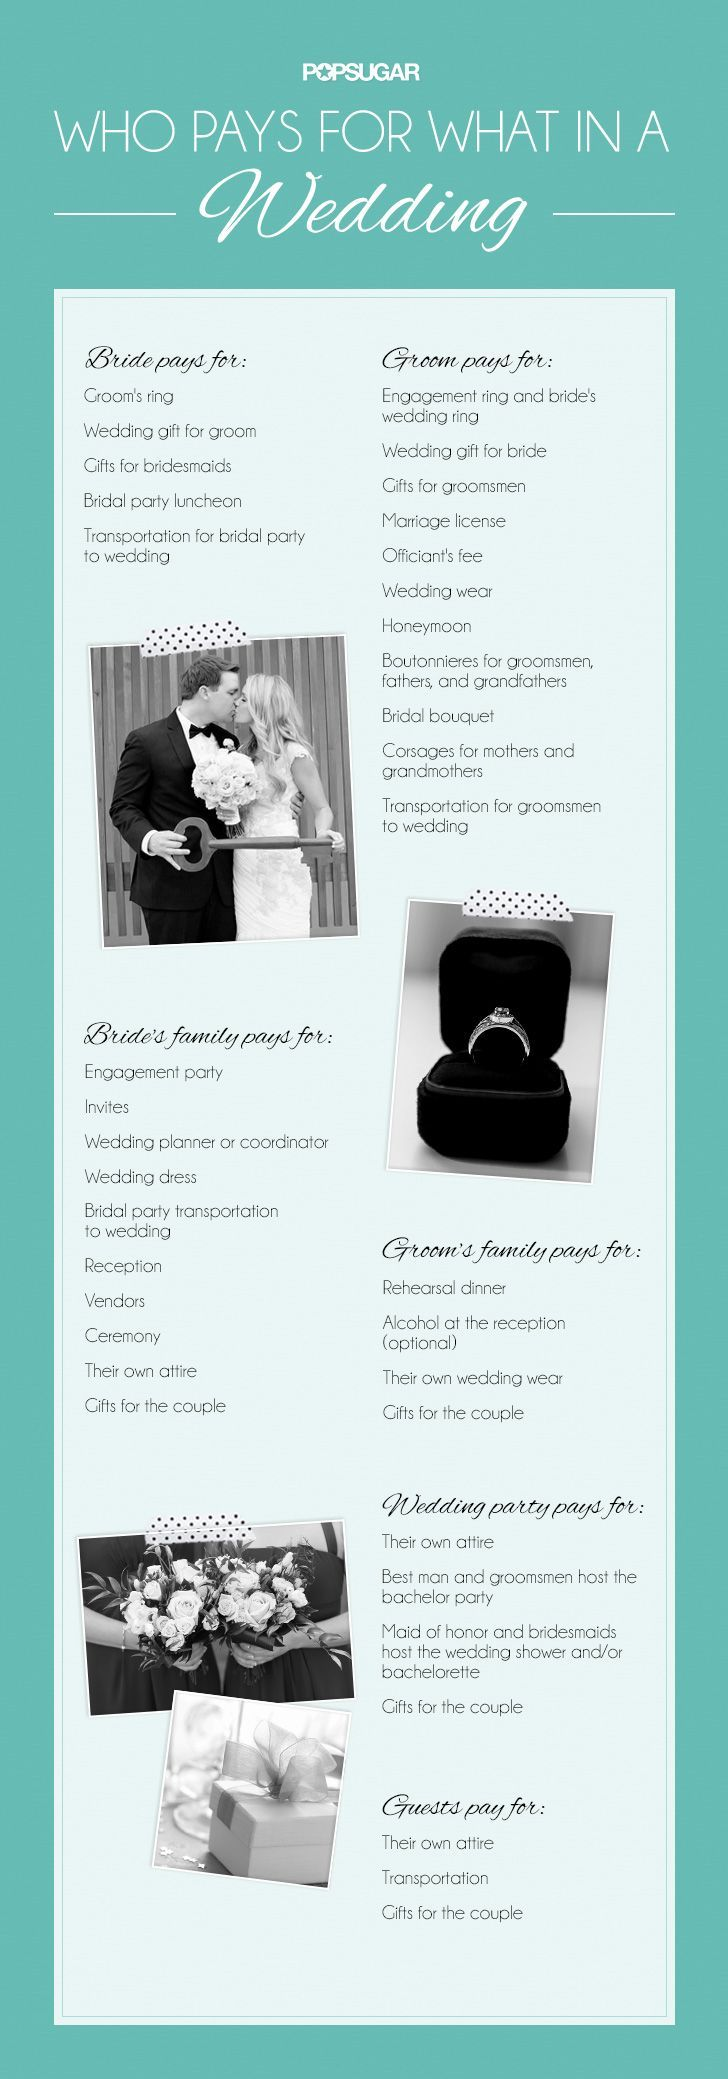 Guide to who should pay for what in a wedding!  YOUR WEDDING INSPIRATION GUIDE IS WAITING FOR YOU...